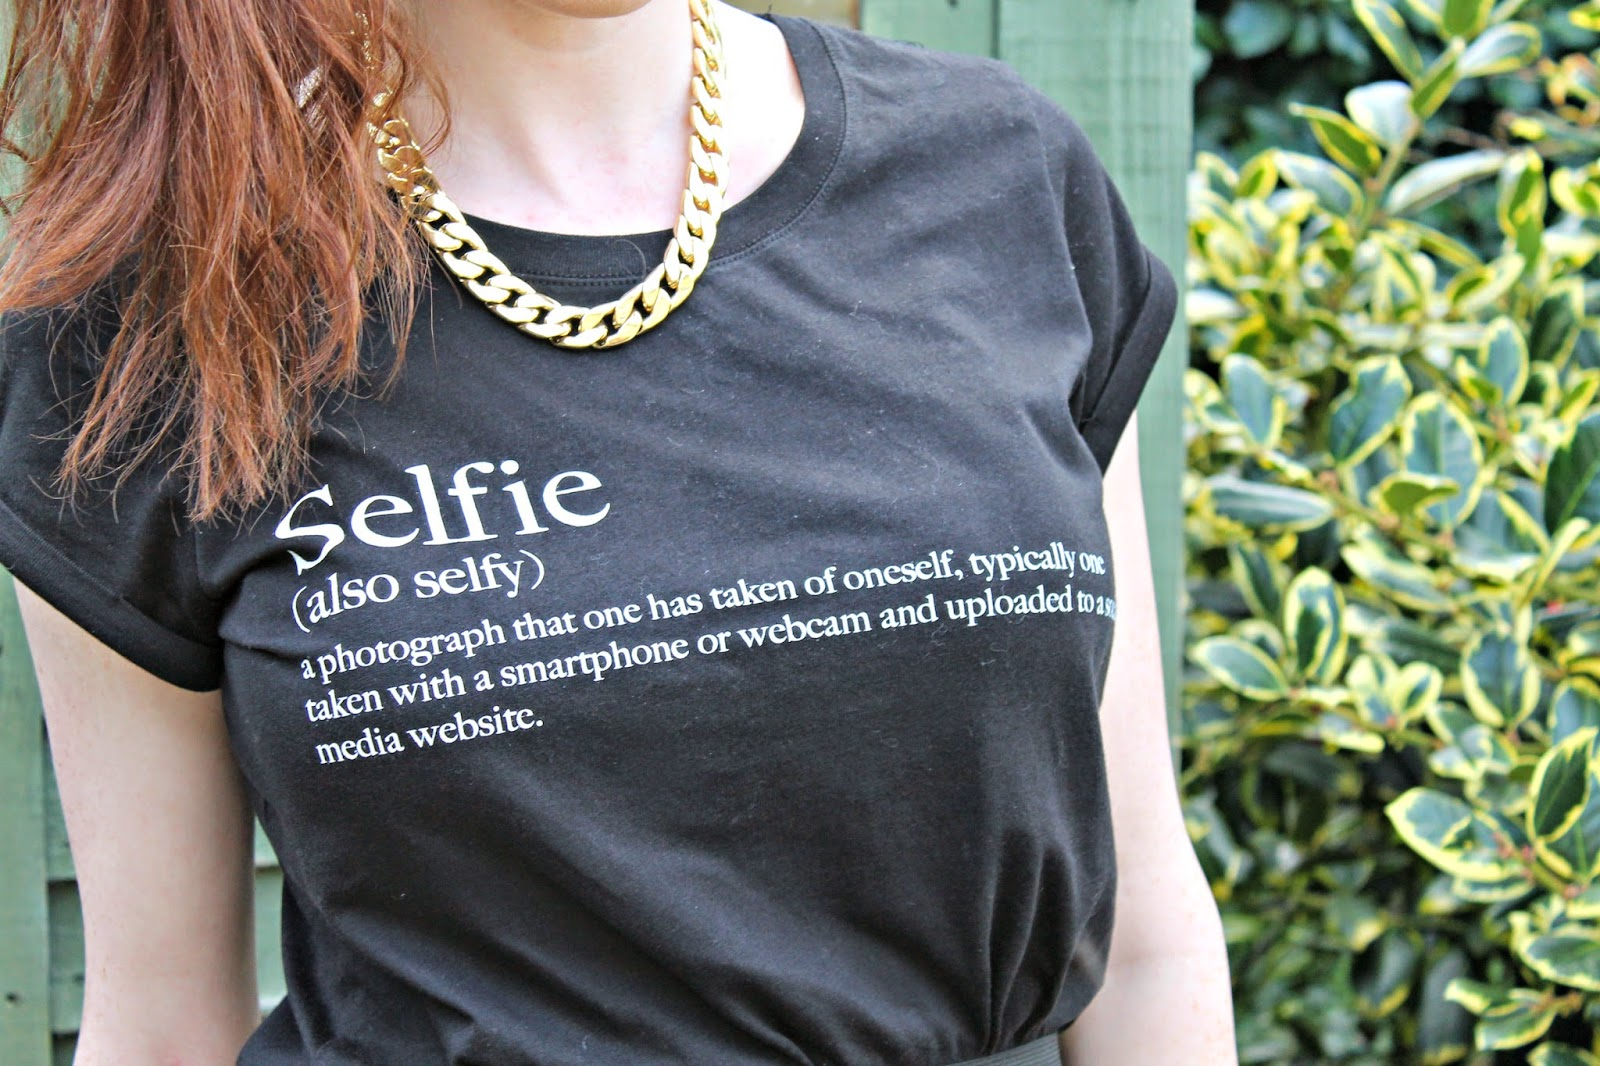 Selfie tshirt new look blog